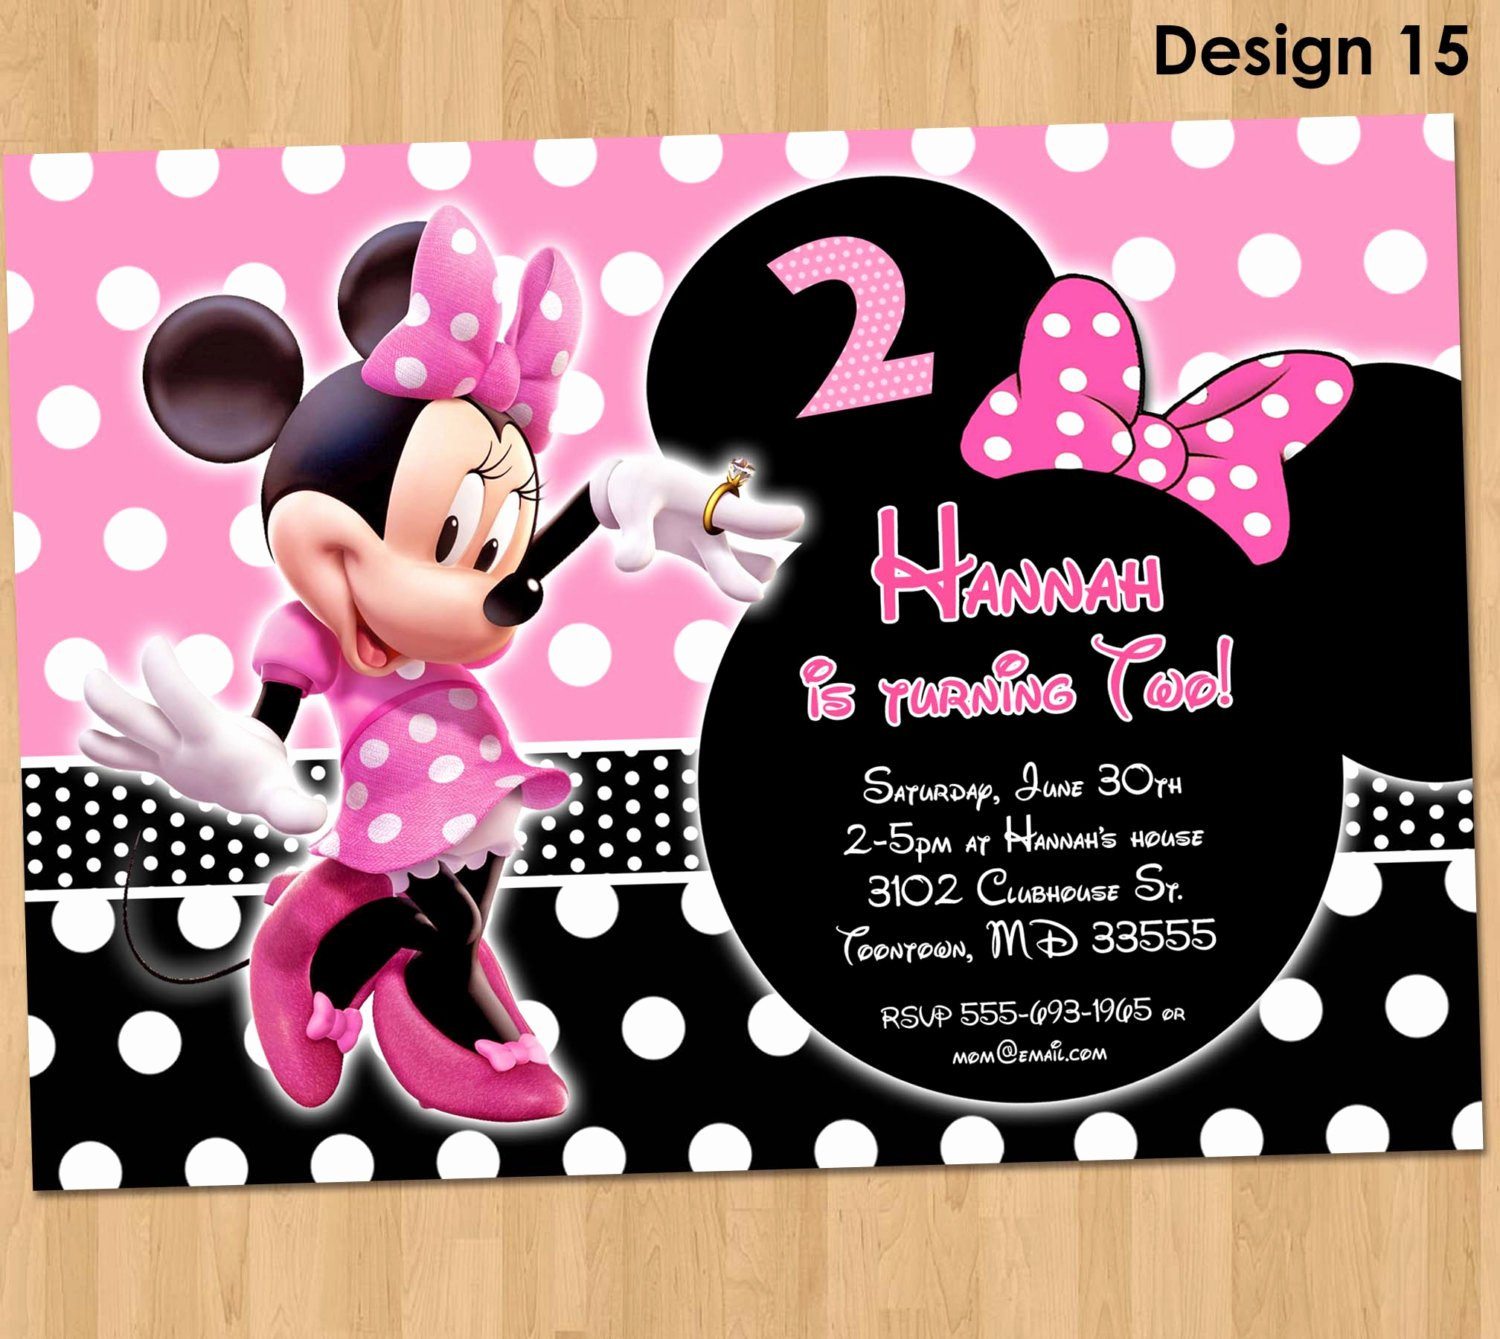 Minnie Mouse Invitation Maker Beautiful Minnie Mouse Invitation Minnie Mouse Birthday Invitation